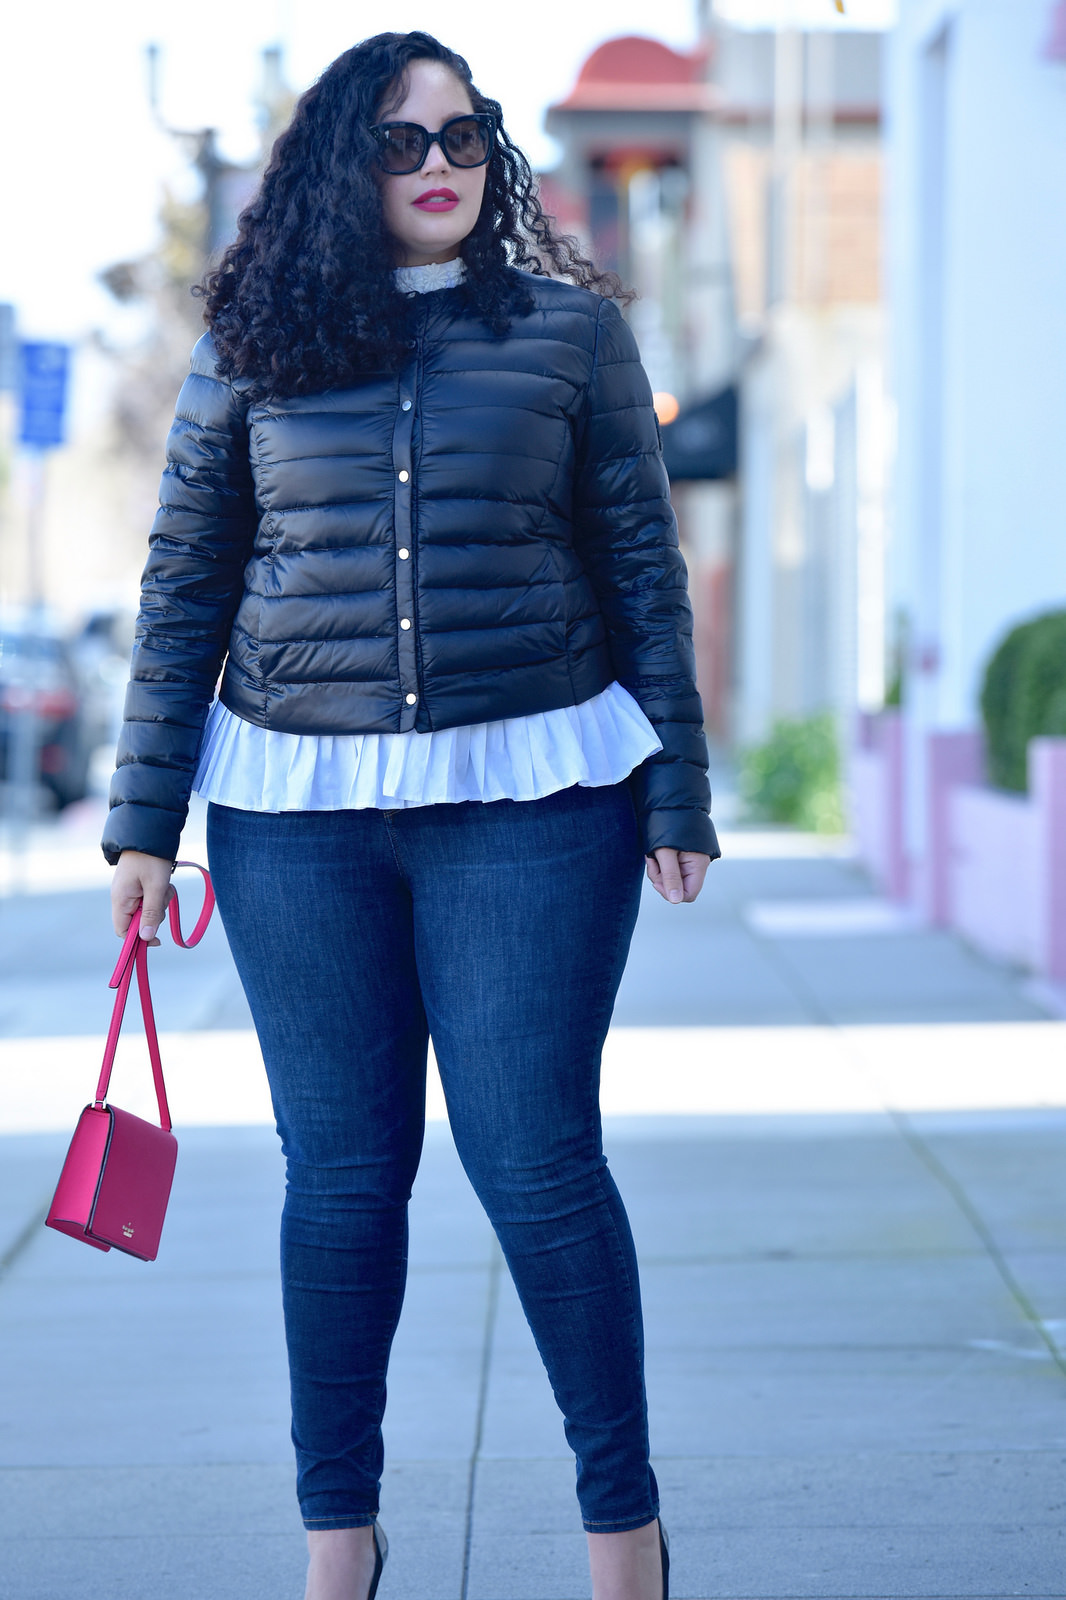 Featuring a puffer jacket from Ralph Lauren, Top from Eloquii, Rockstar Jeans from Old Navy, bag from Kate Spade, and Lipstick from Mac